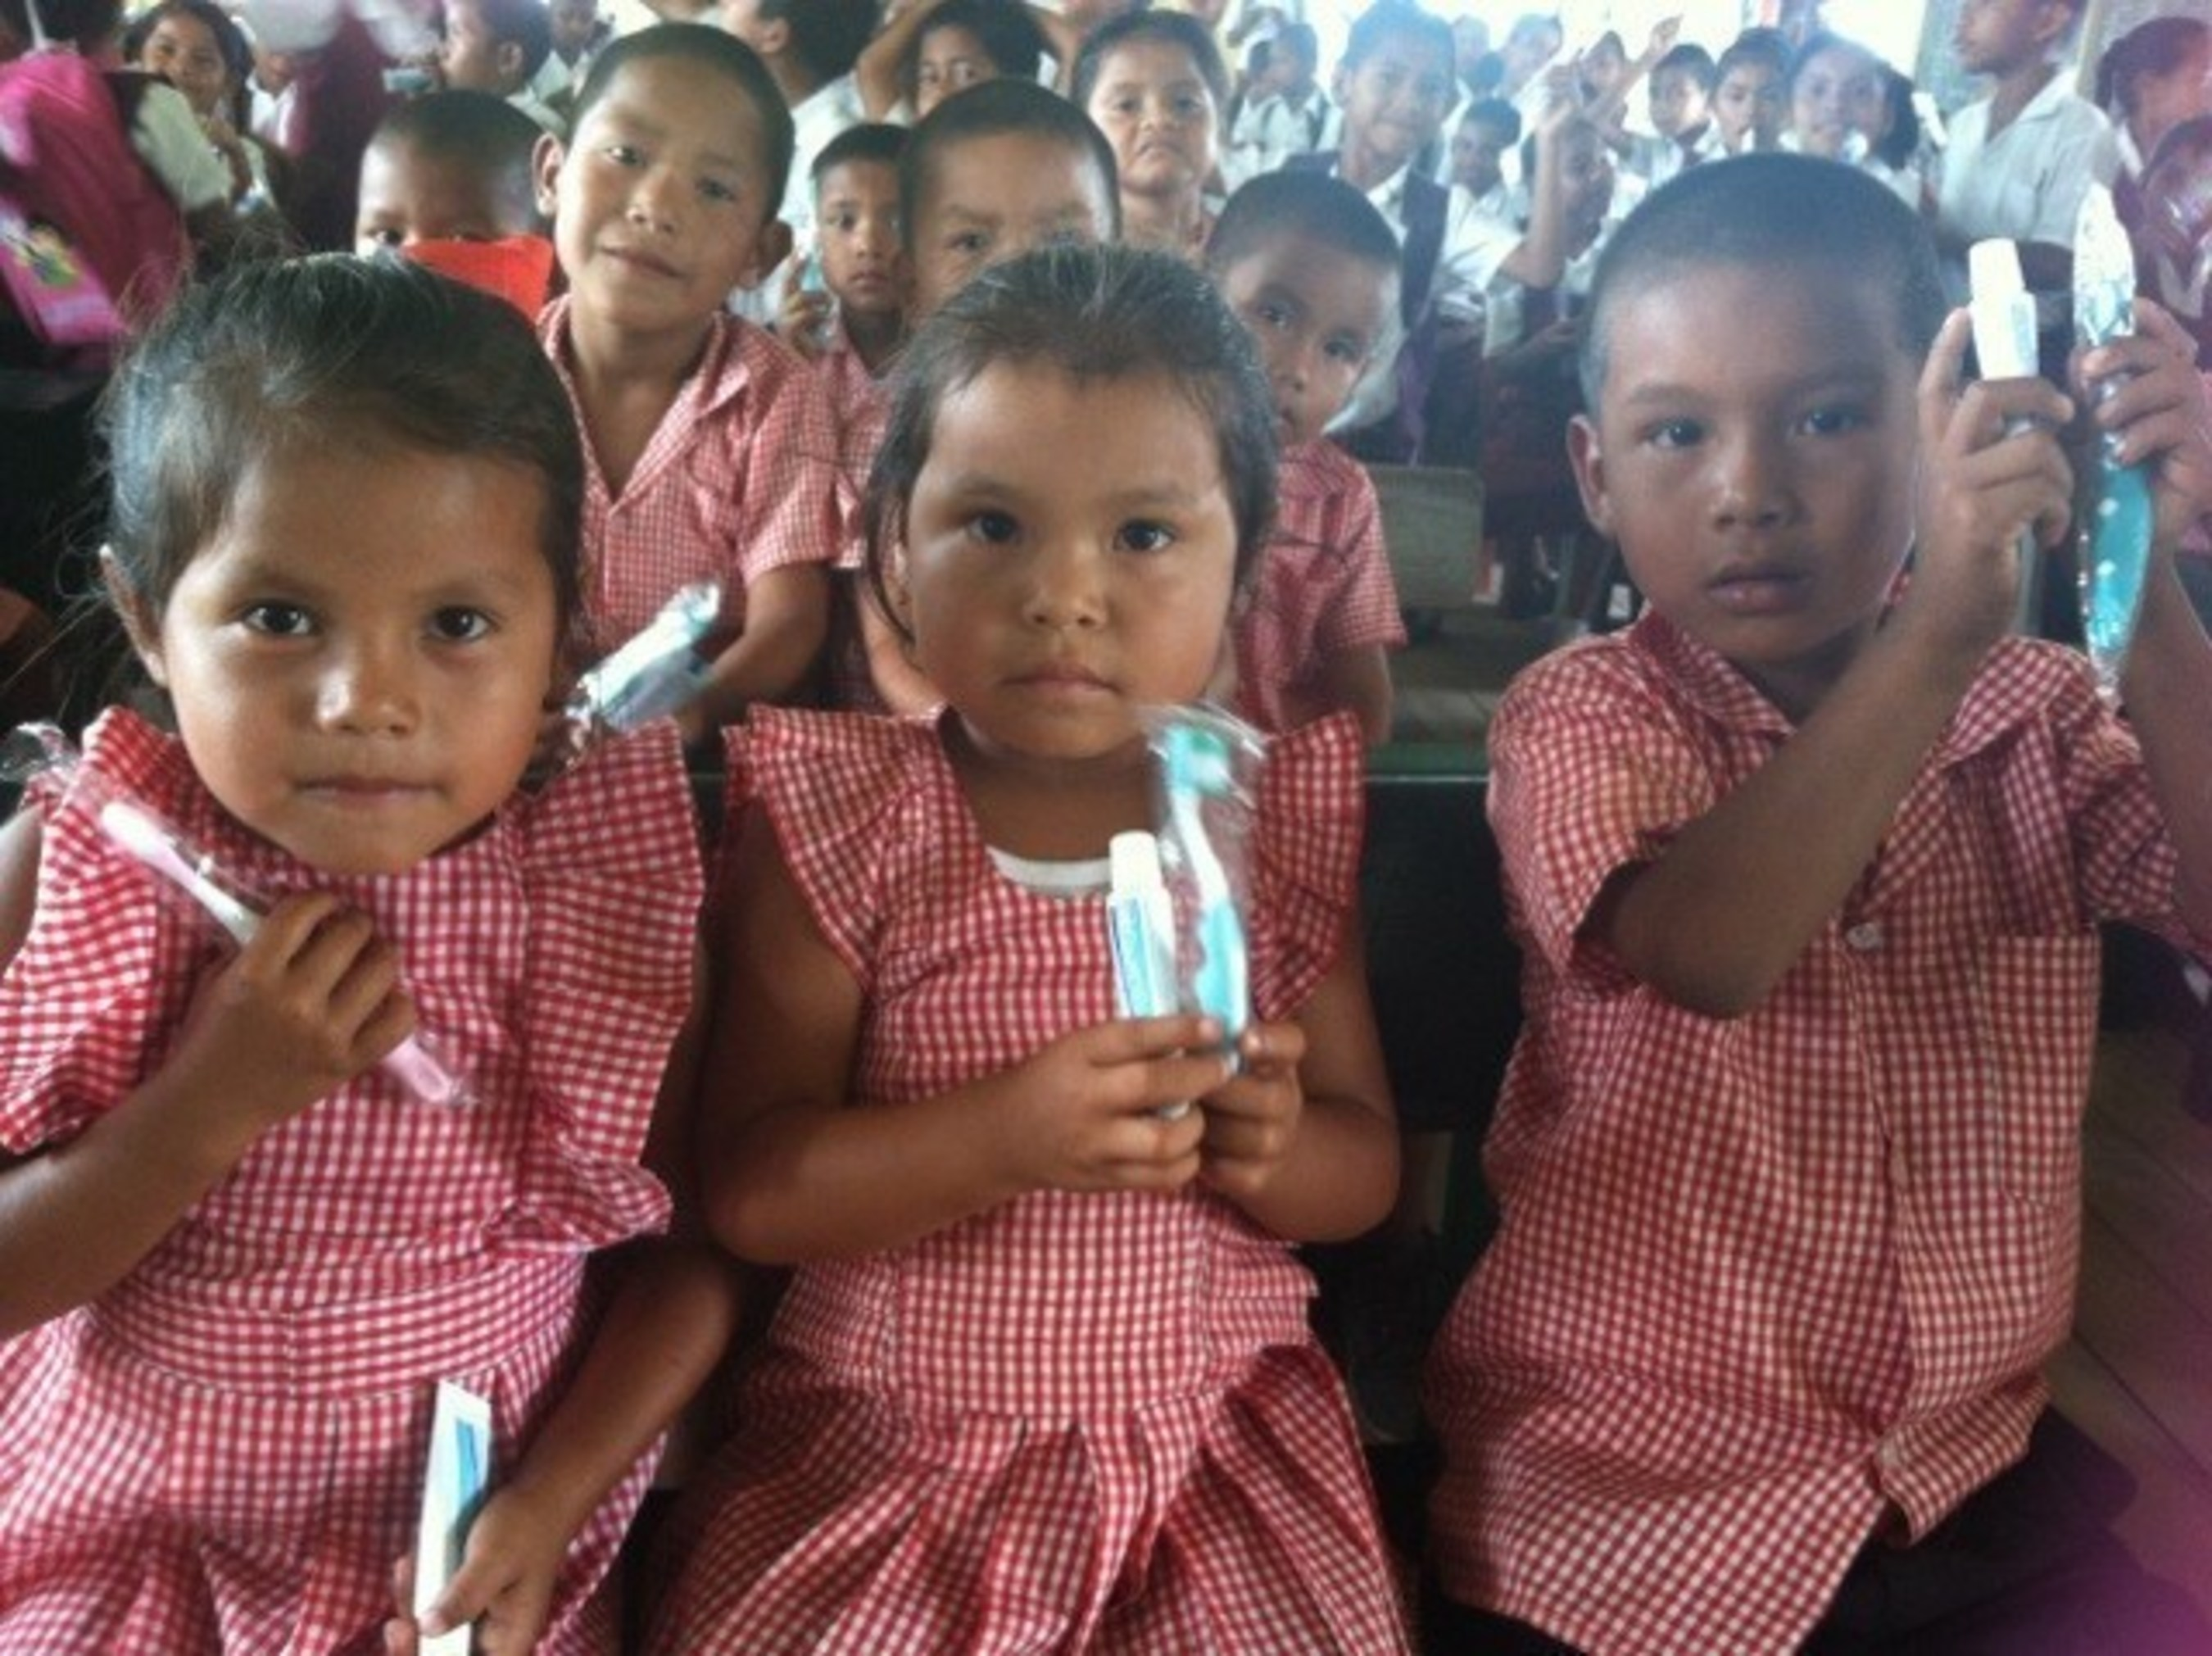 Students in Haimaracabra, Guyana learn about the importance of brushing and flossing during a health education session led by Peace Corps volunteers.